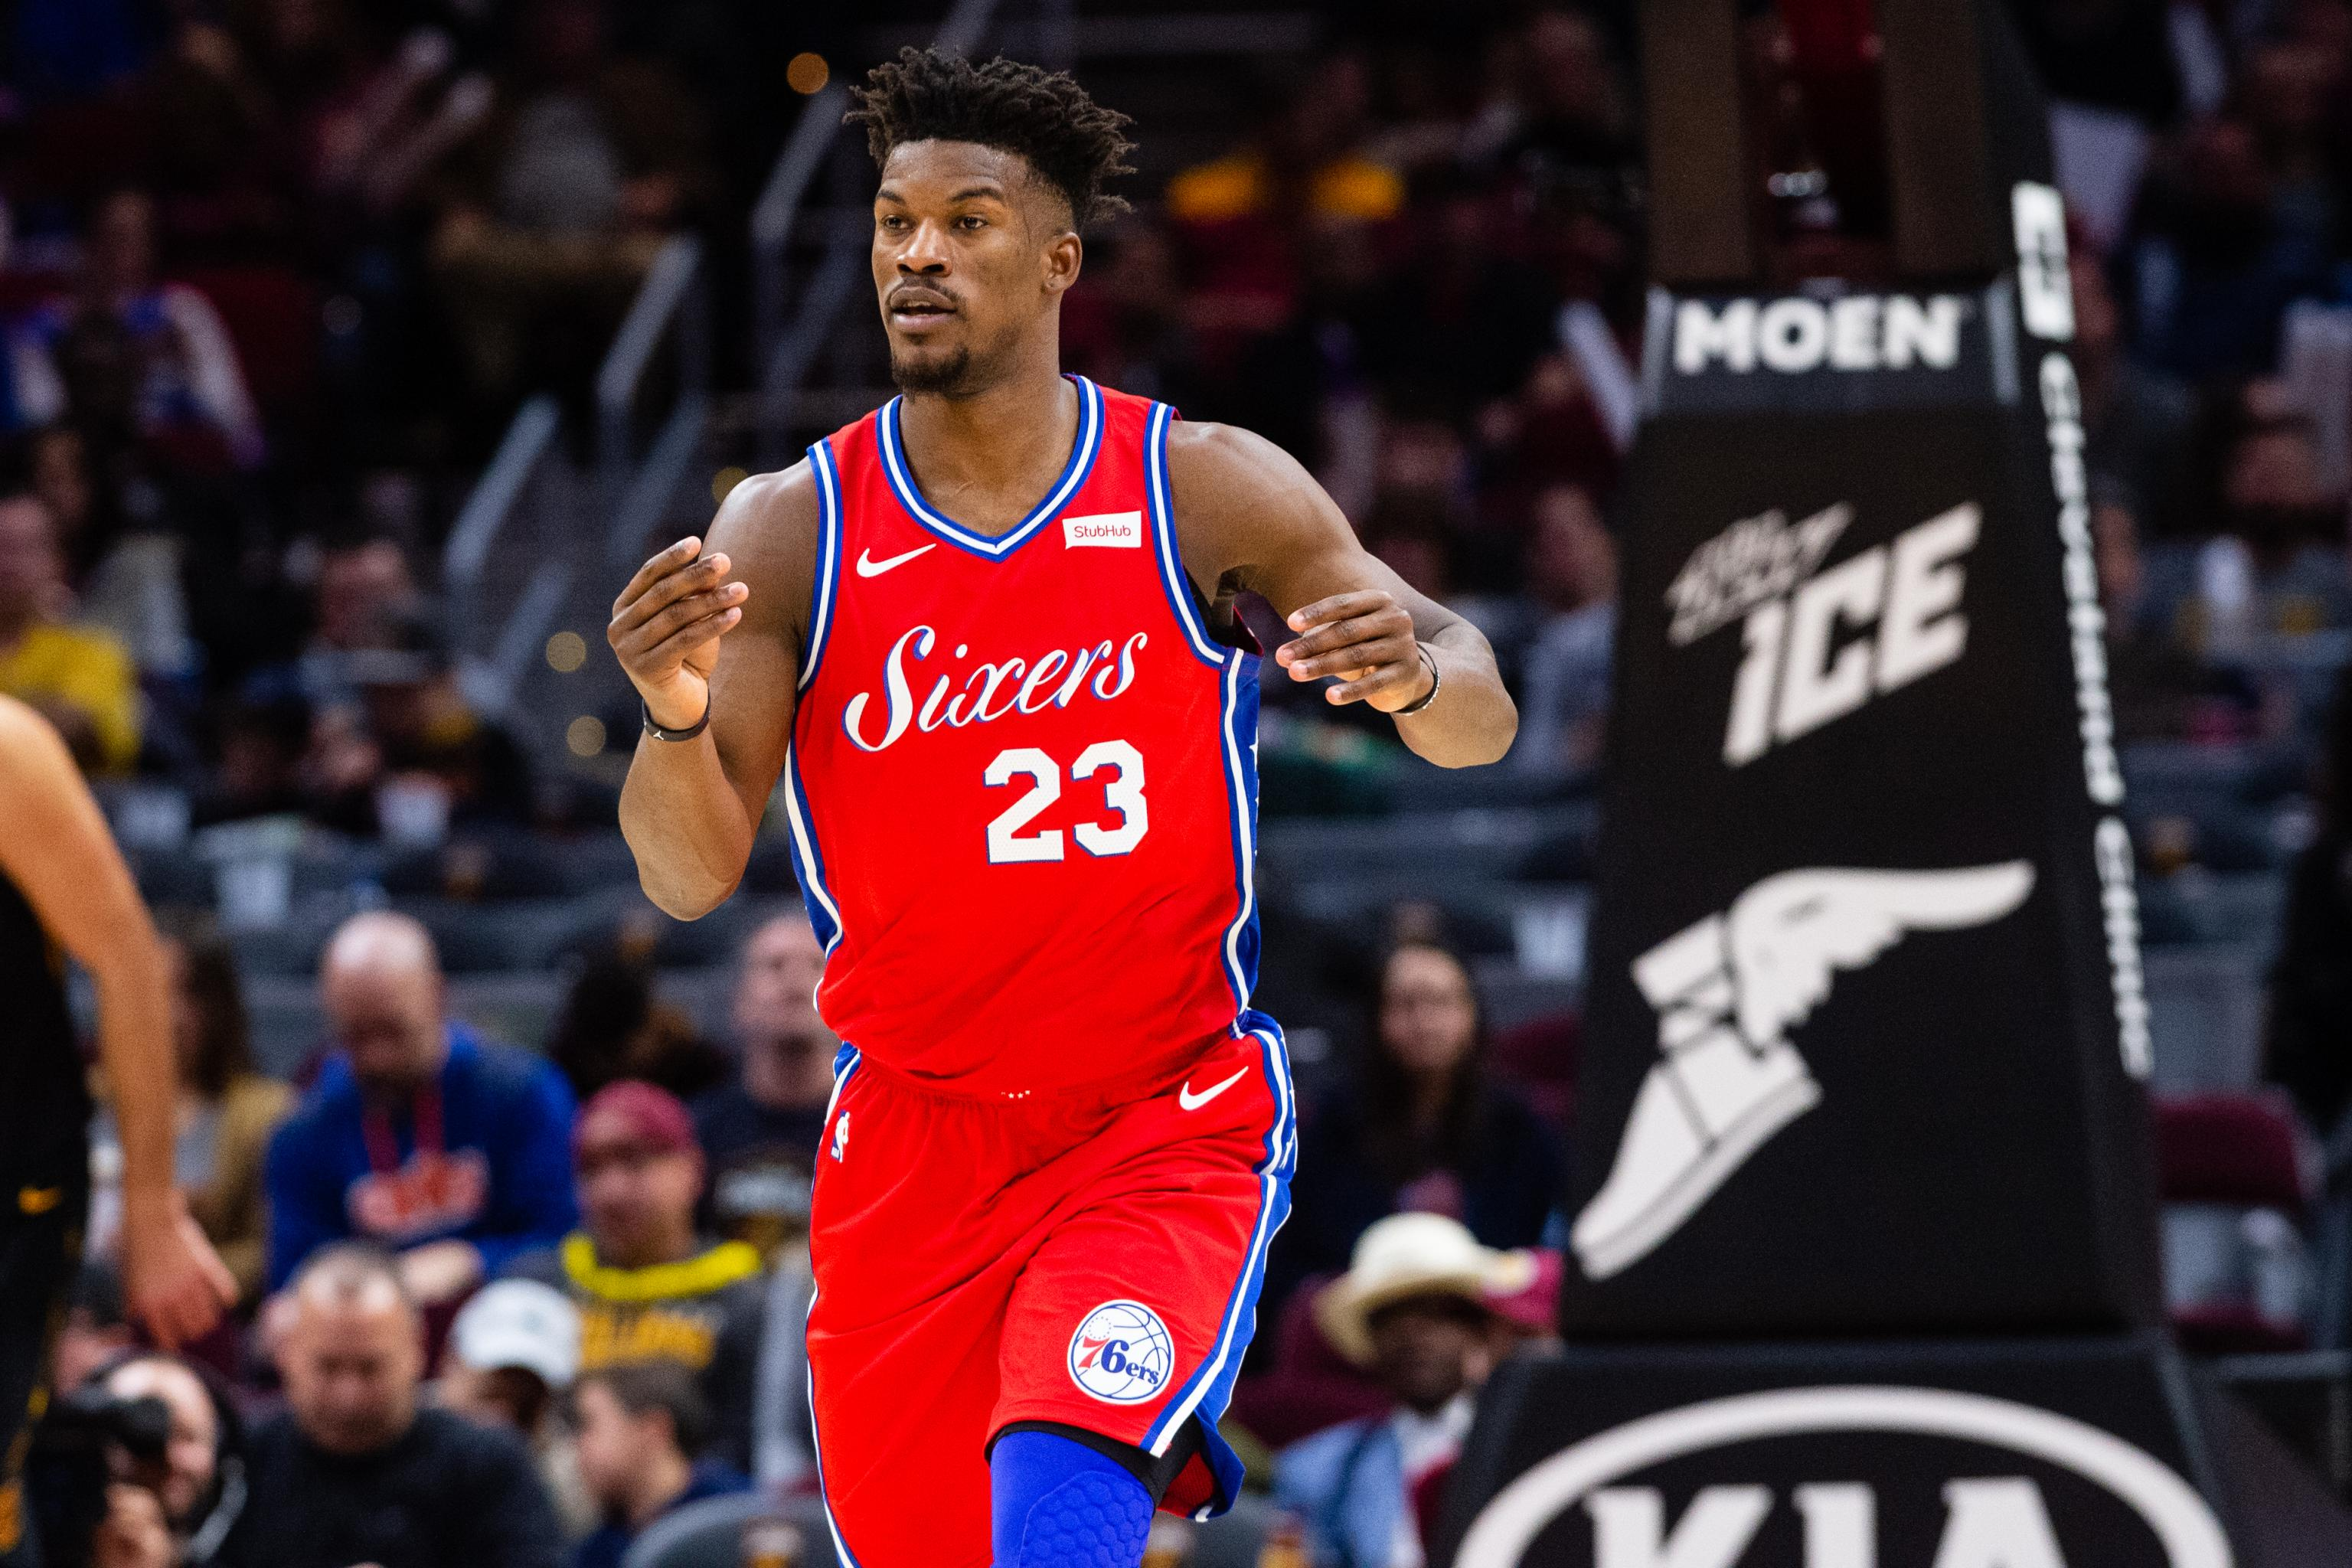 finest selection 7f8a2 39f37 Complementary' Jimmy Butler Has Been Exactly What the 76ers ...